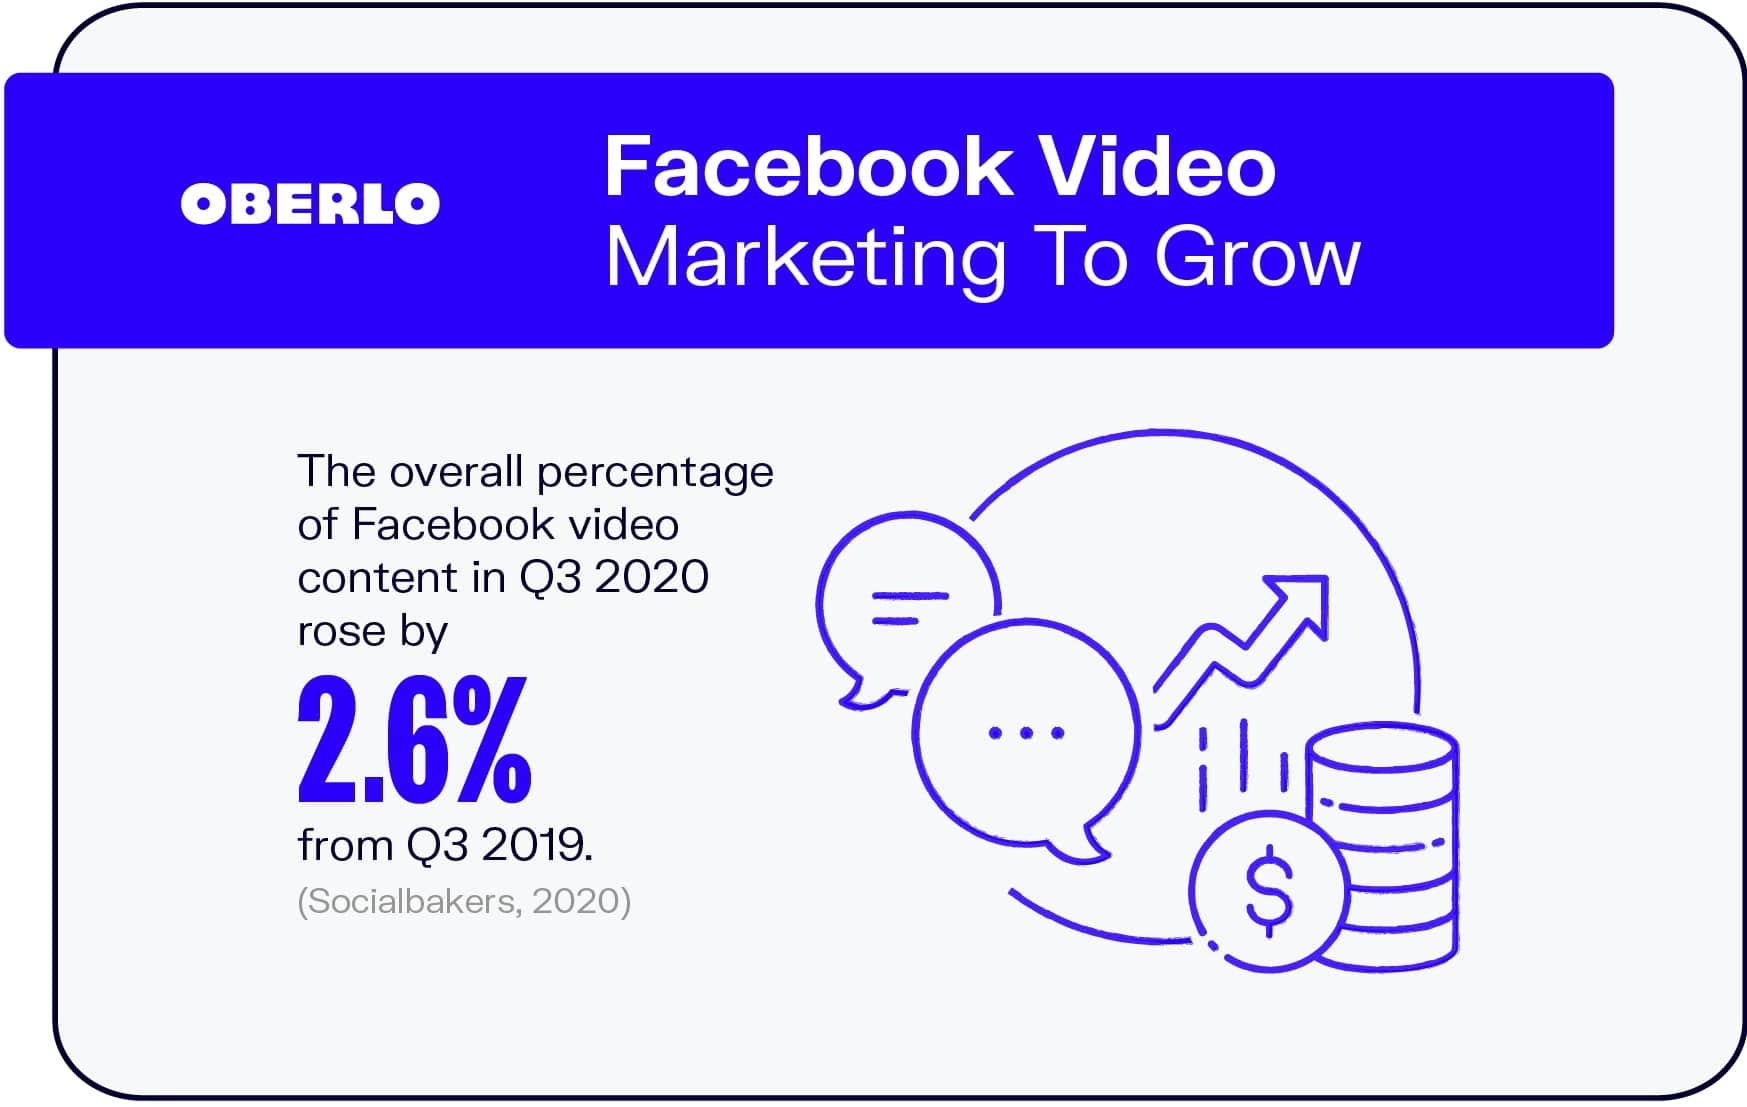 Facebook Video Marketing To Grow